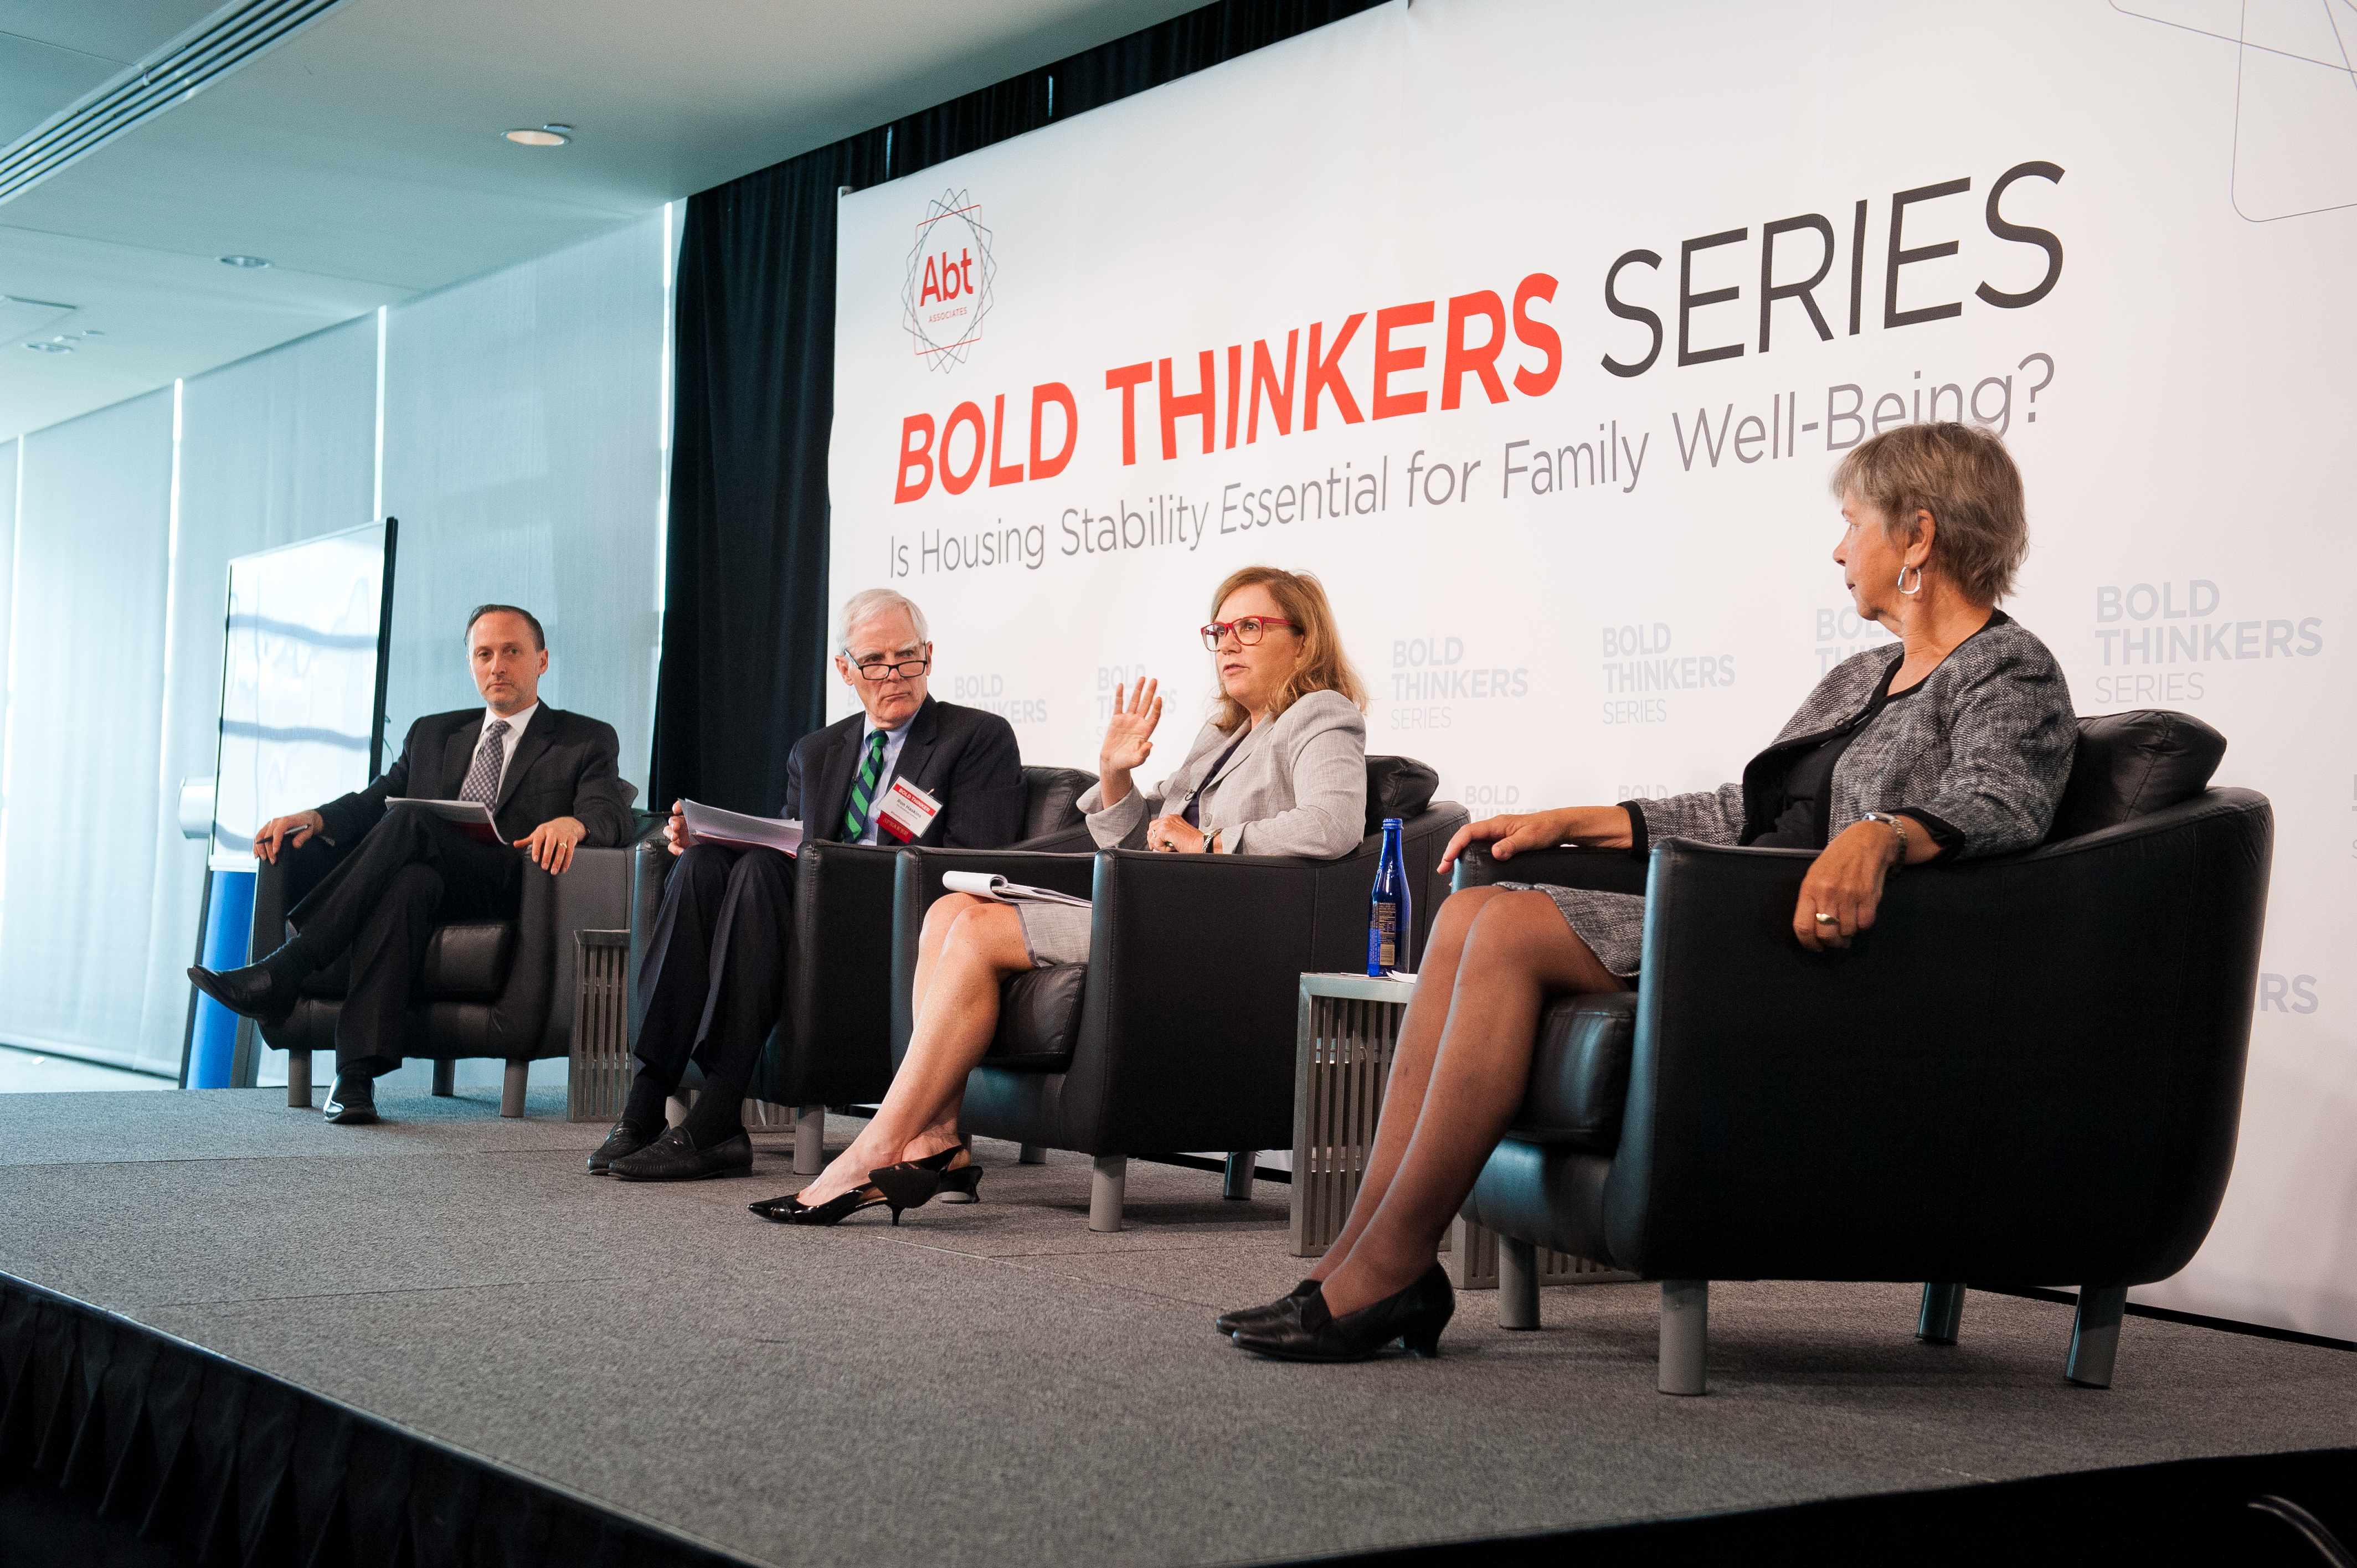 bold thinkers series event stage